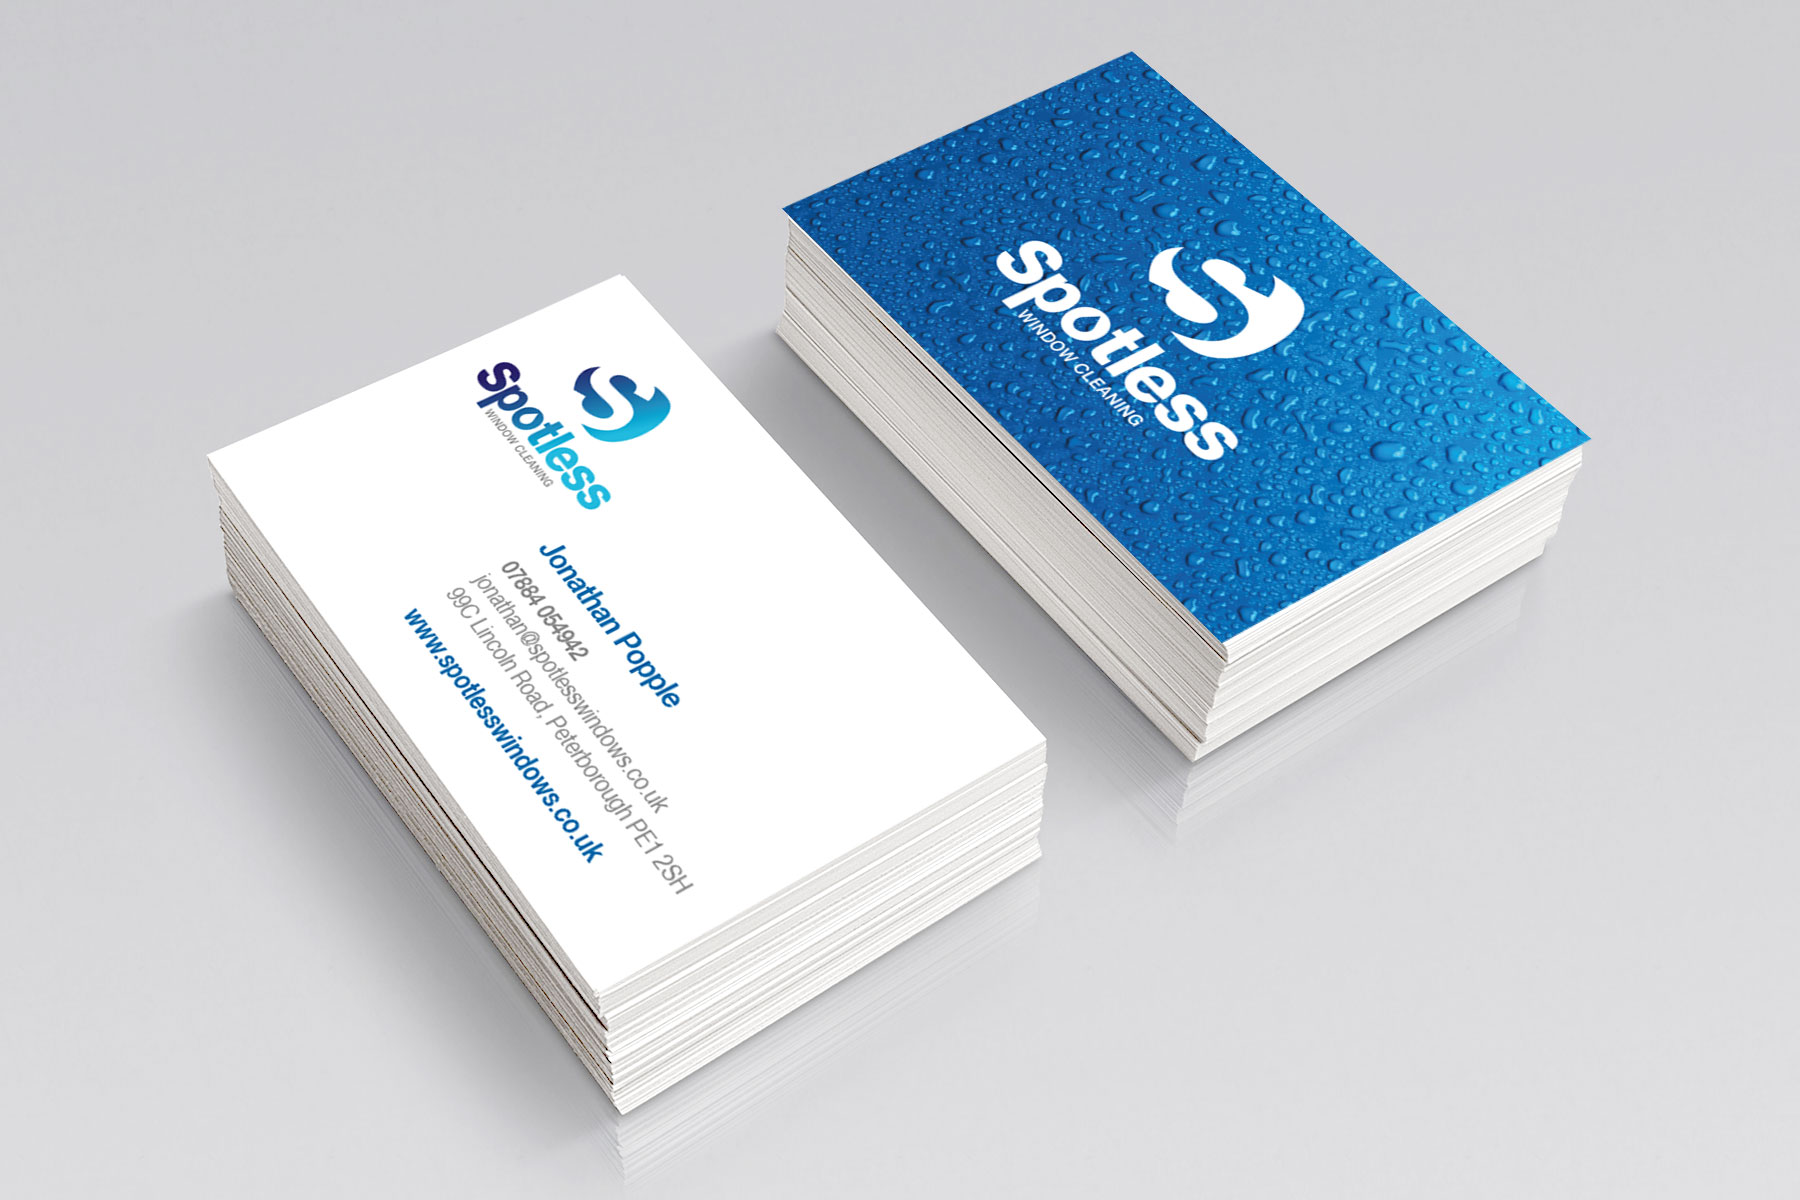 Business cards for Spotless branding